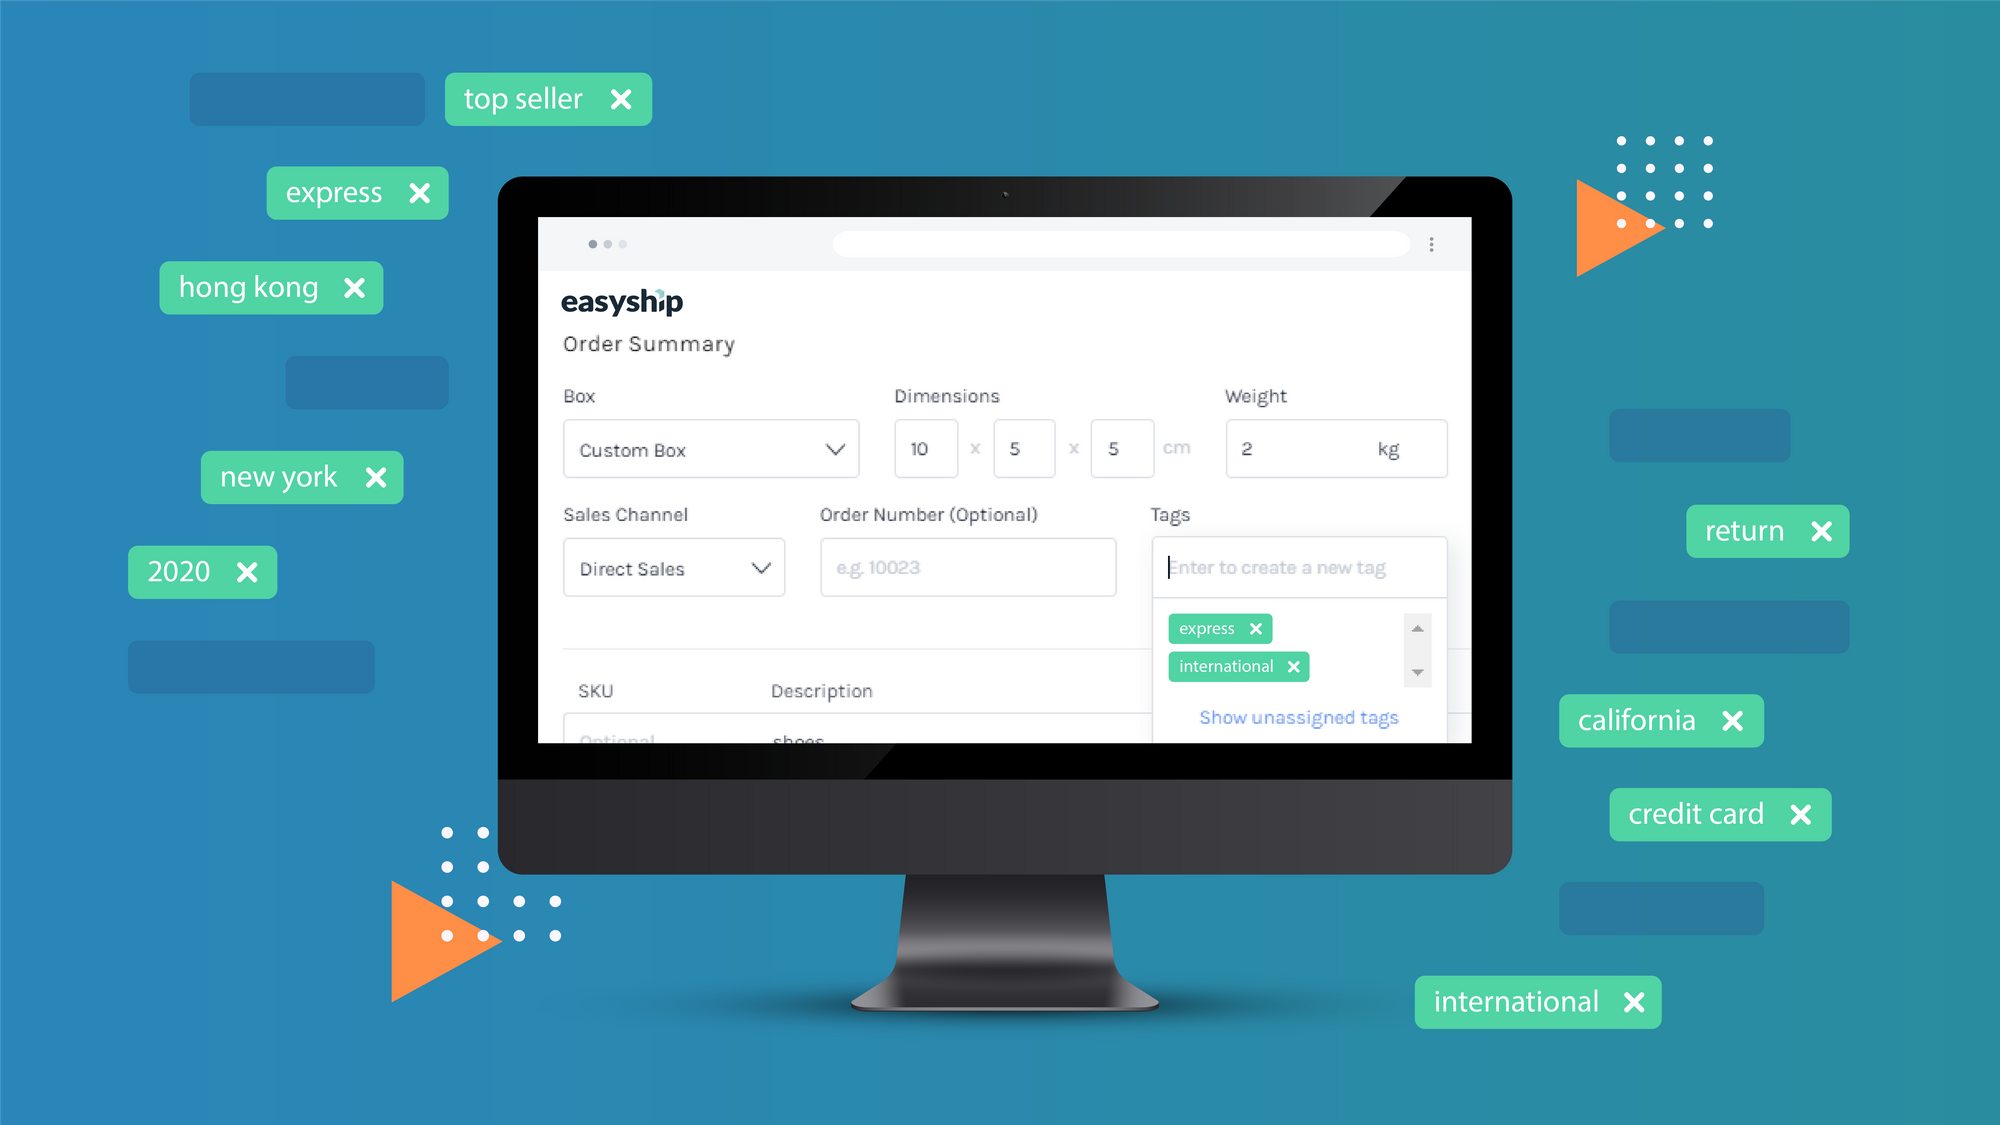 Introducing Shipping Tags: A New Way to Improve Shipping and Fulfillment Workflows